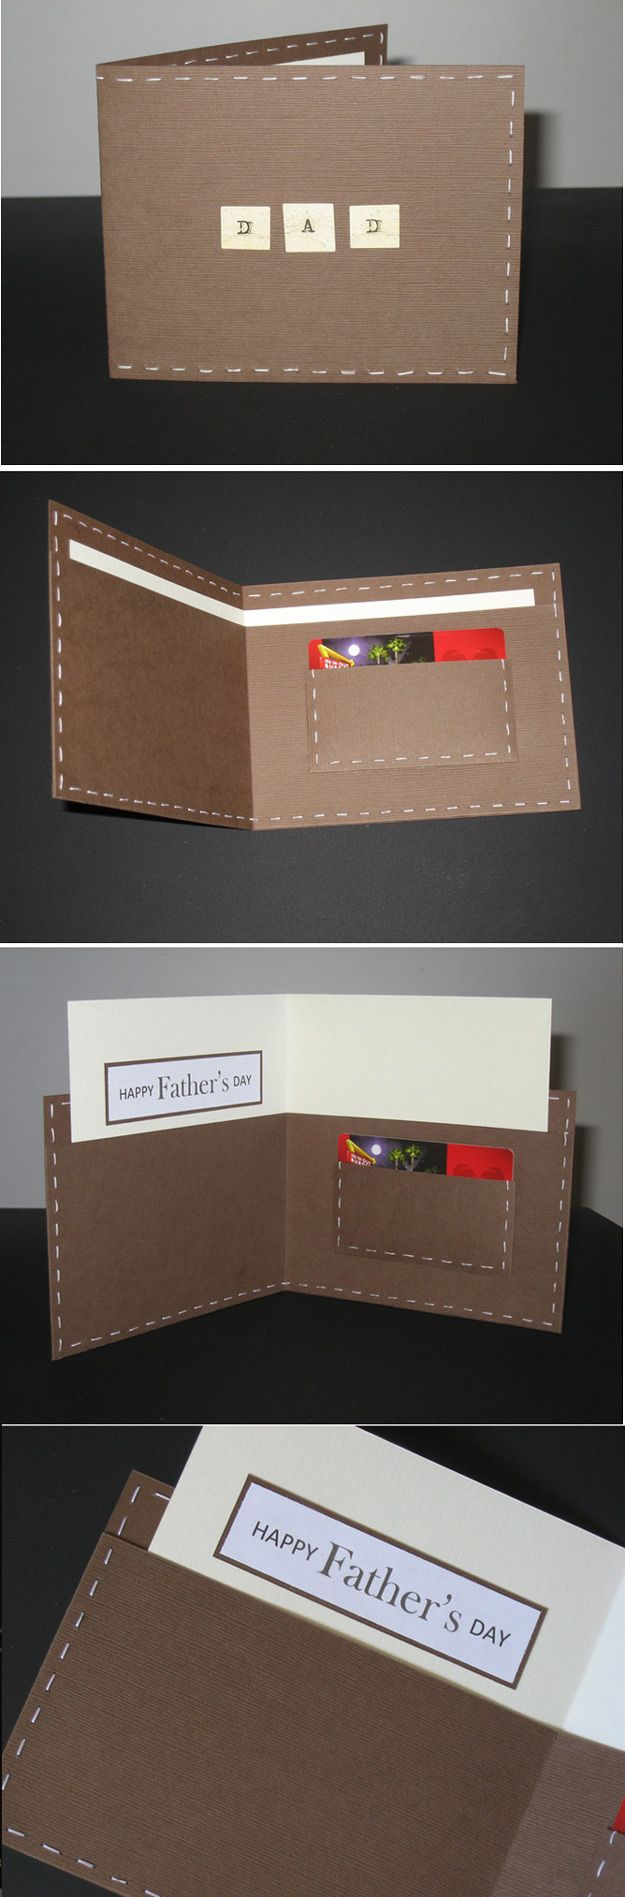 Cool DIY Fathers Day Card Ideas | DIY Wallet Card by DIY Ready at http://diyready.com/21-diy-fathers-day-cards/